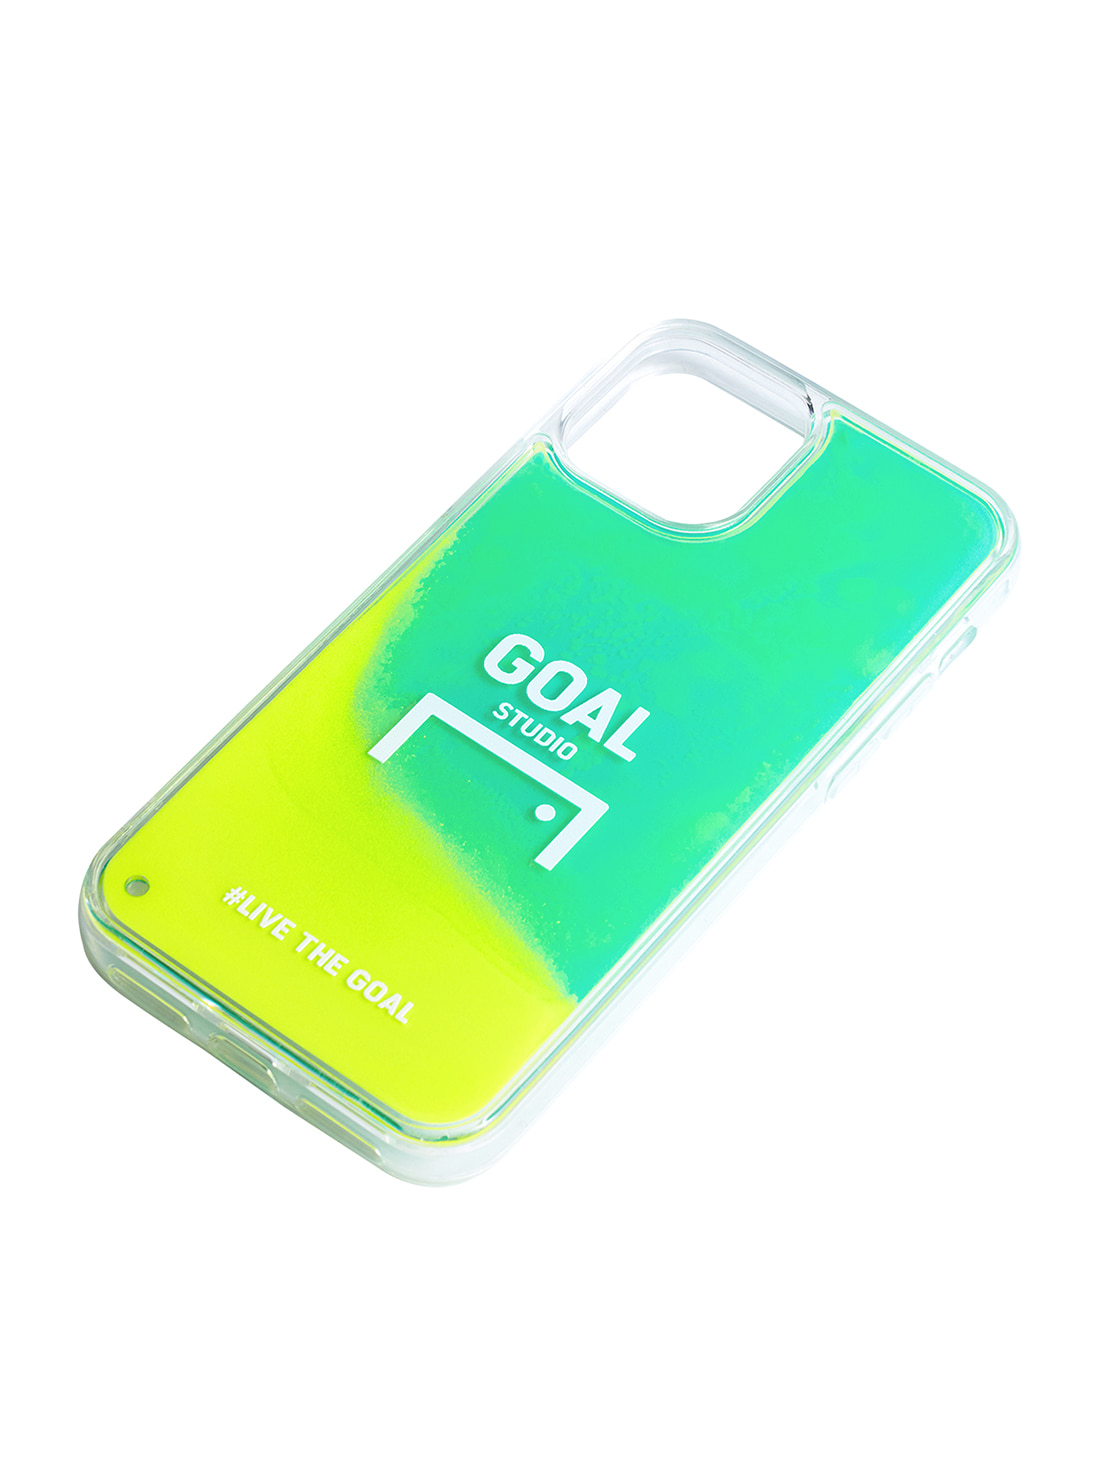 GOALSTUDIO NEON SAND PHONE CASE (iPhone)